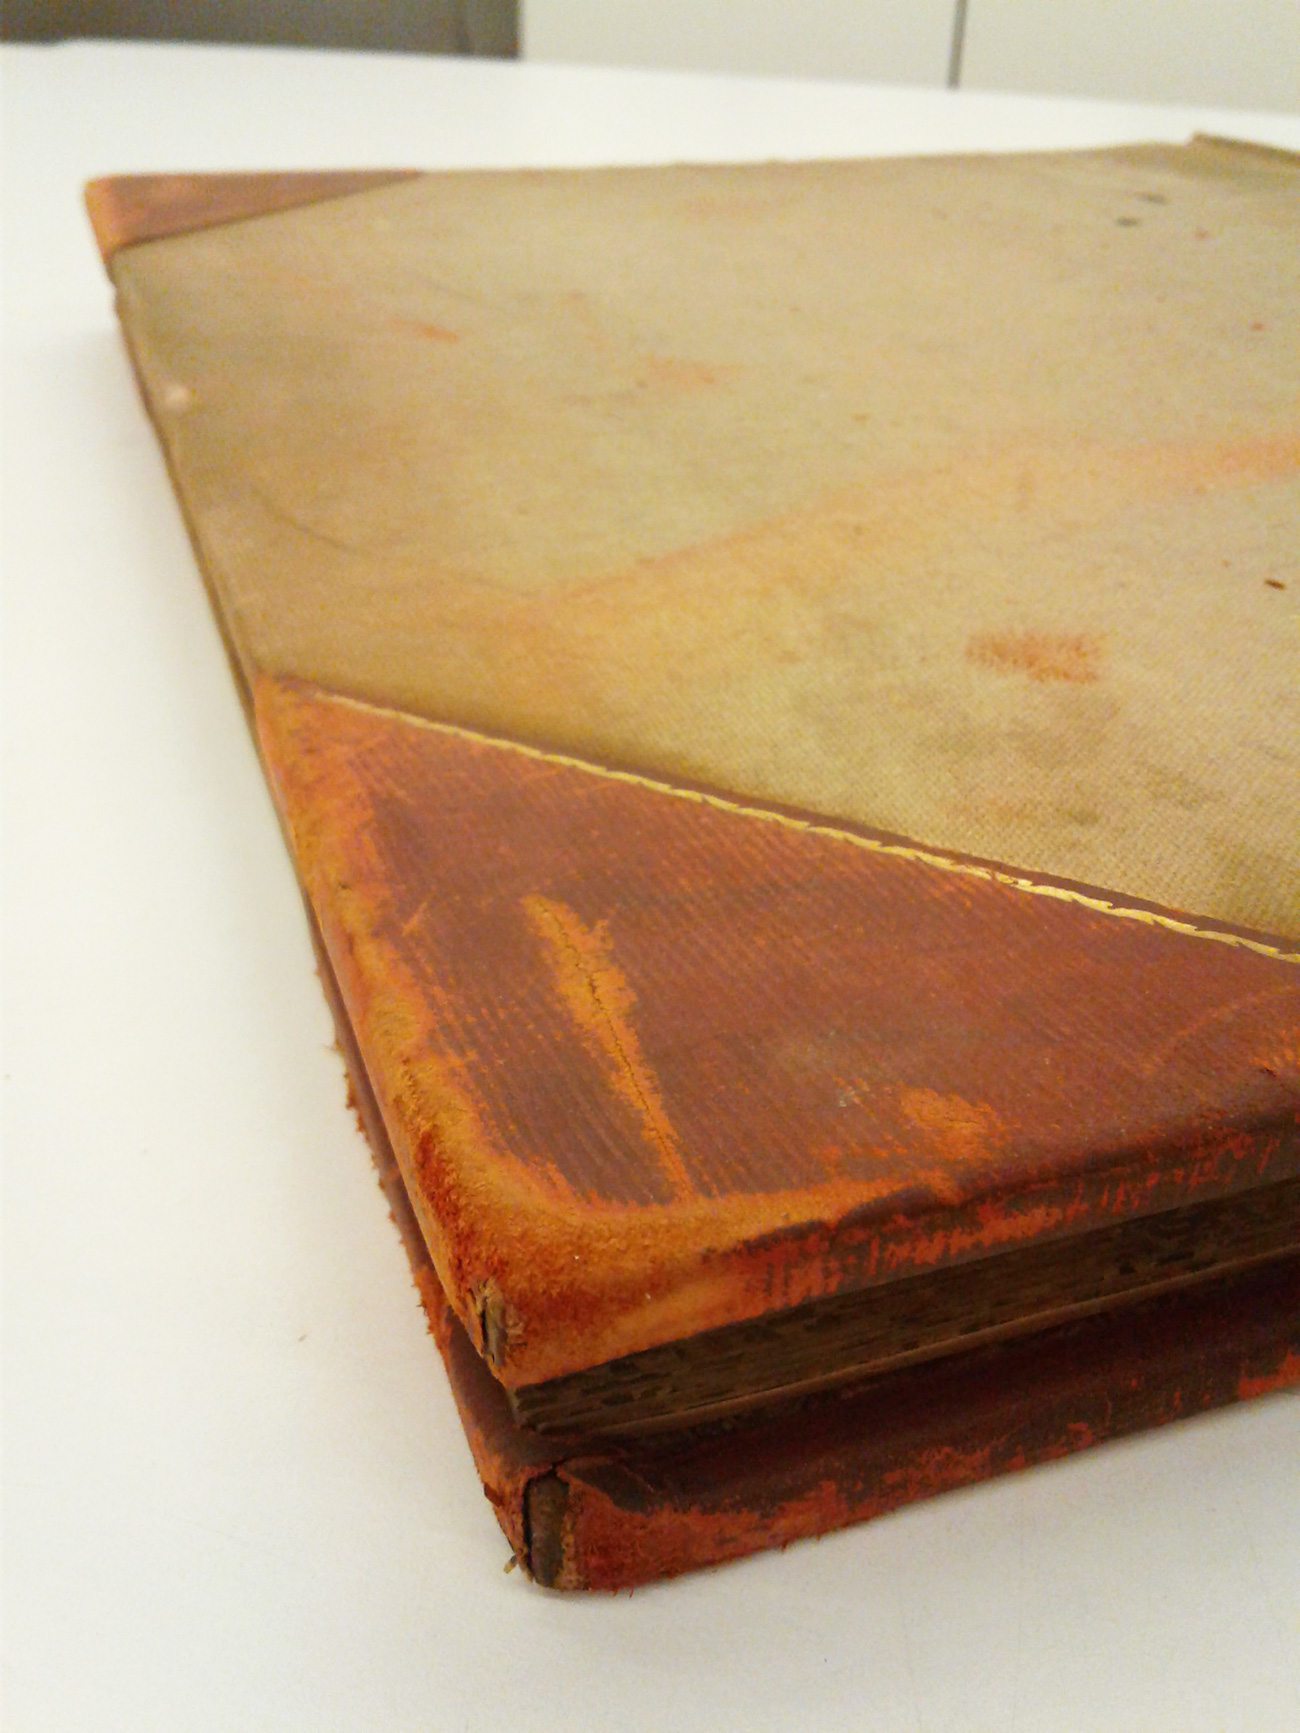 Red rot on one of the financial ledgers from the M. Knoedler & Co. records